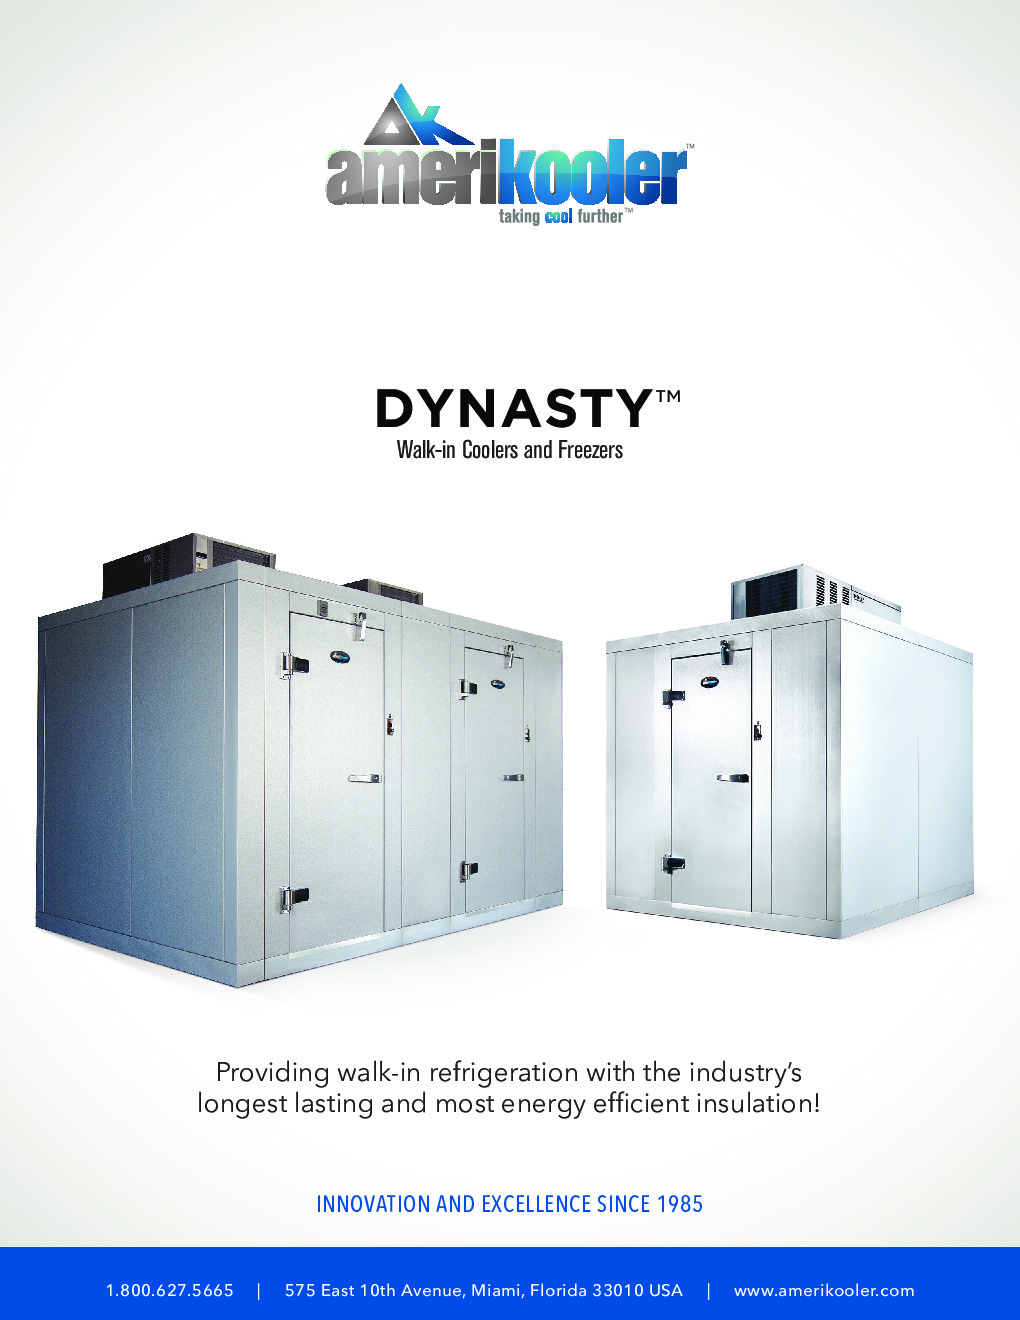 AmeriKooler DW101277F-4/8-SC 10' X 12' Walk-In Cooler, 8' L Cooler with Floor and 4' L Freezer, Self Contained